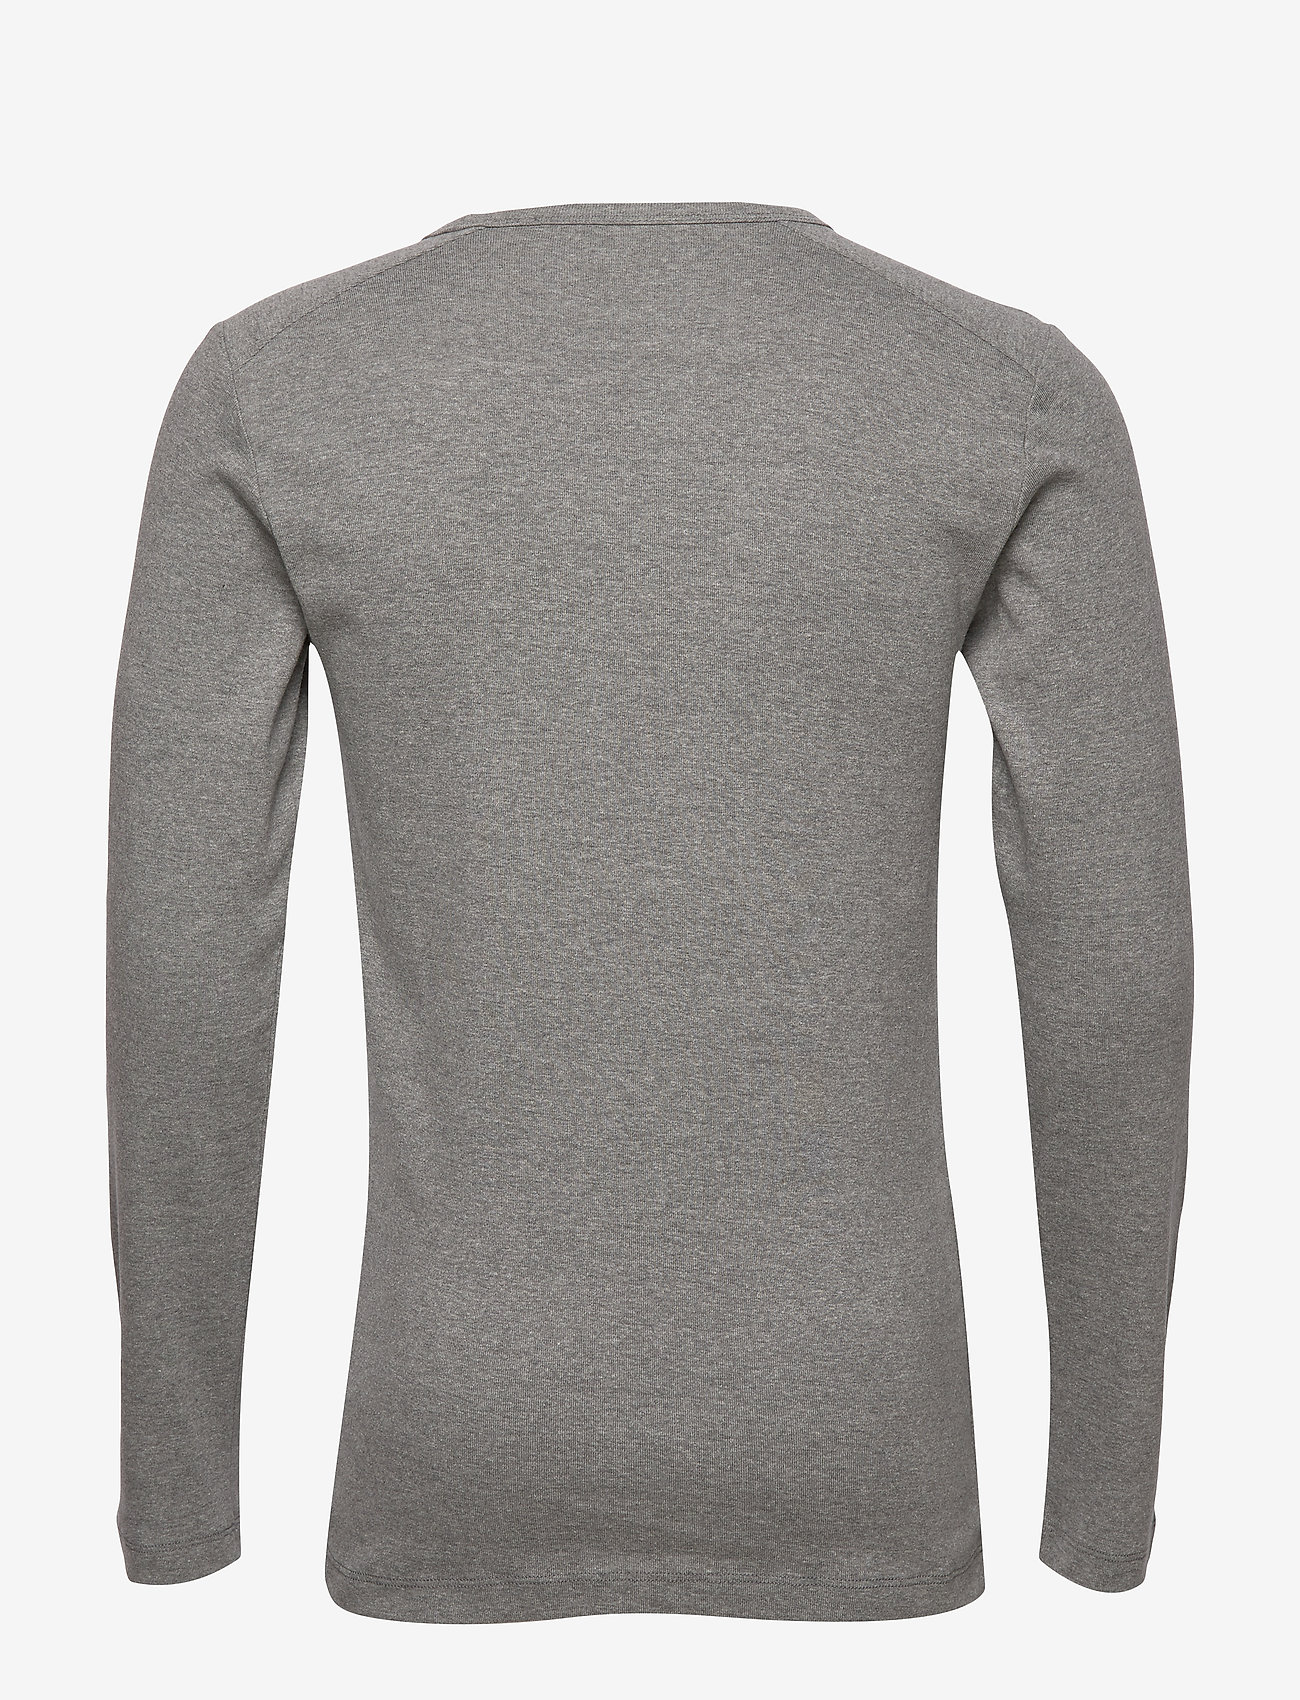 Esprit Casual - T-Shirts - basic t-shirts - medium grey - 1